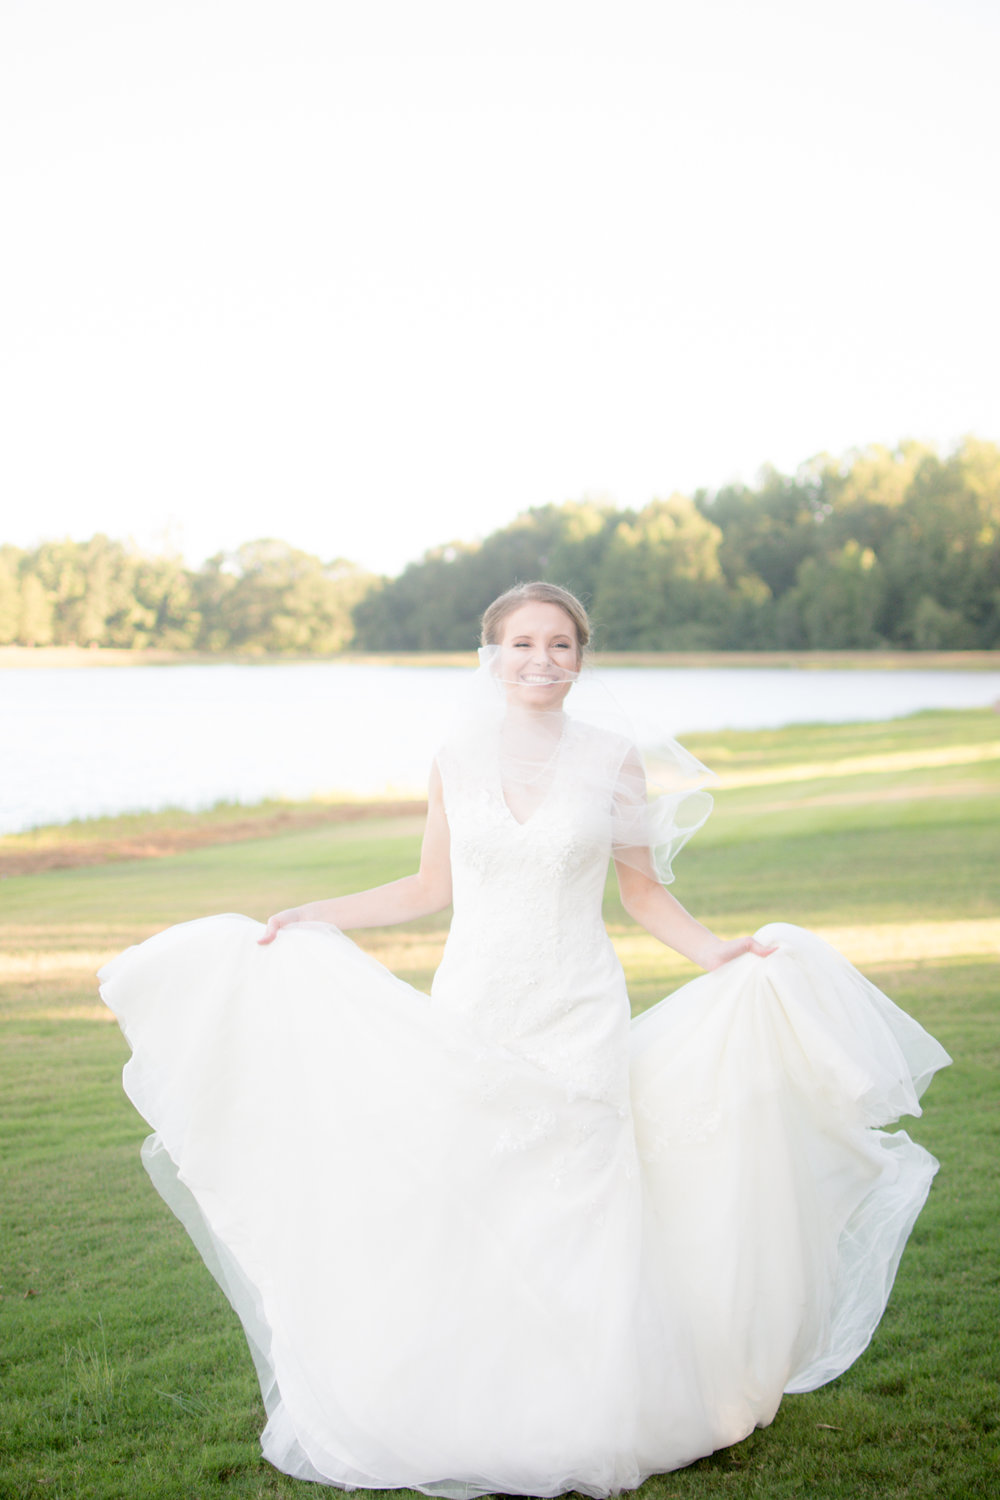 bridalportraits (15 of 49).JPG